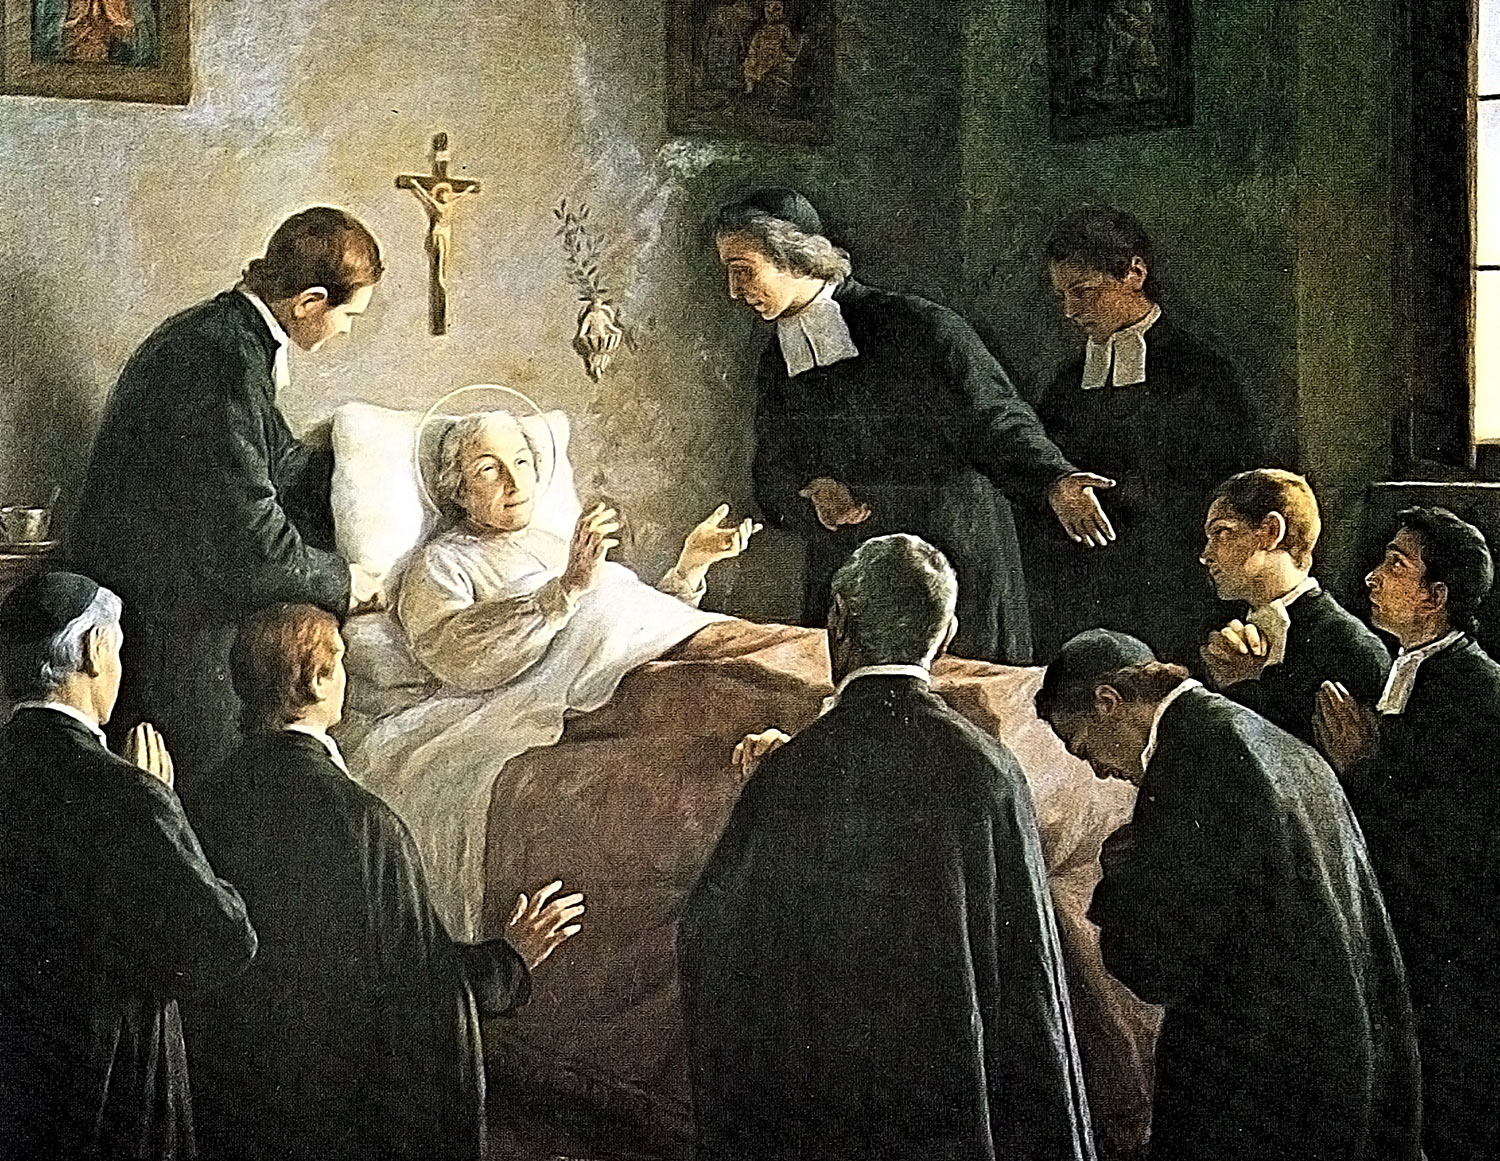 John Baptist De La Salle on his death bed surrounded by his fellow Christian Brothers